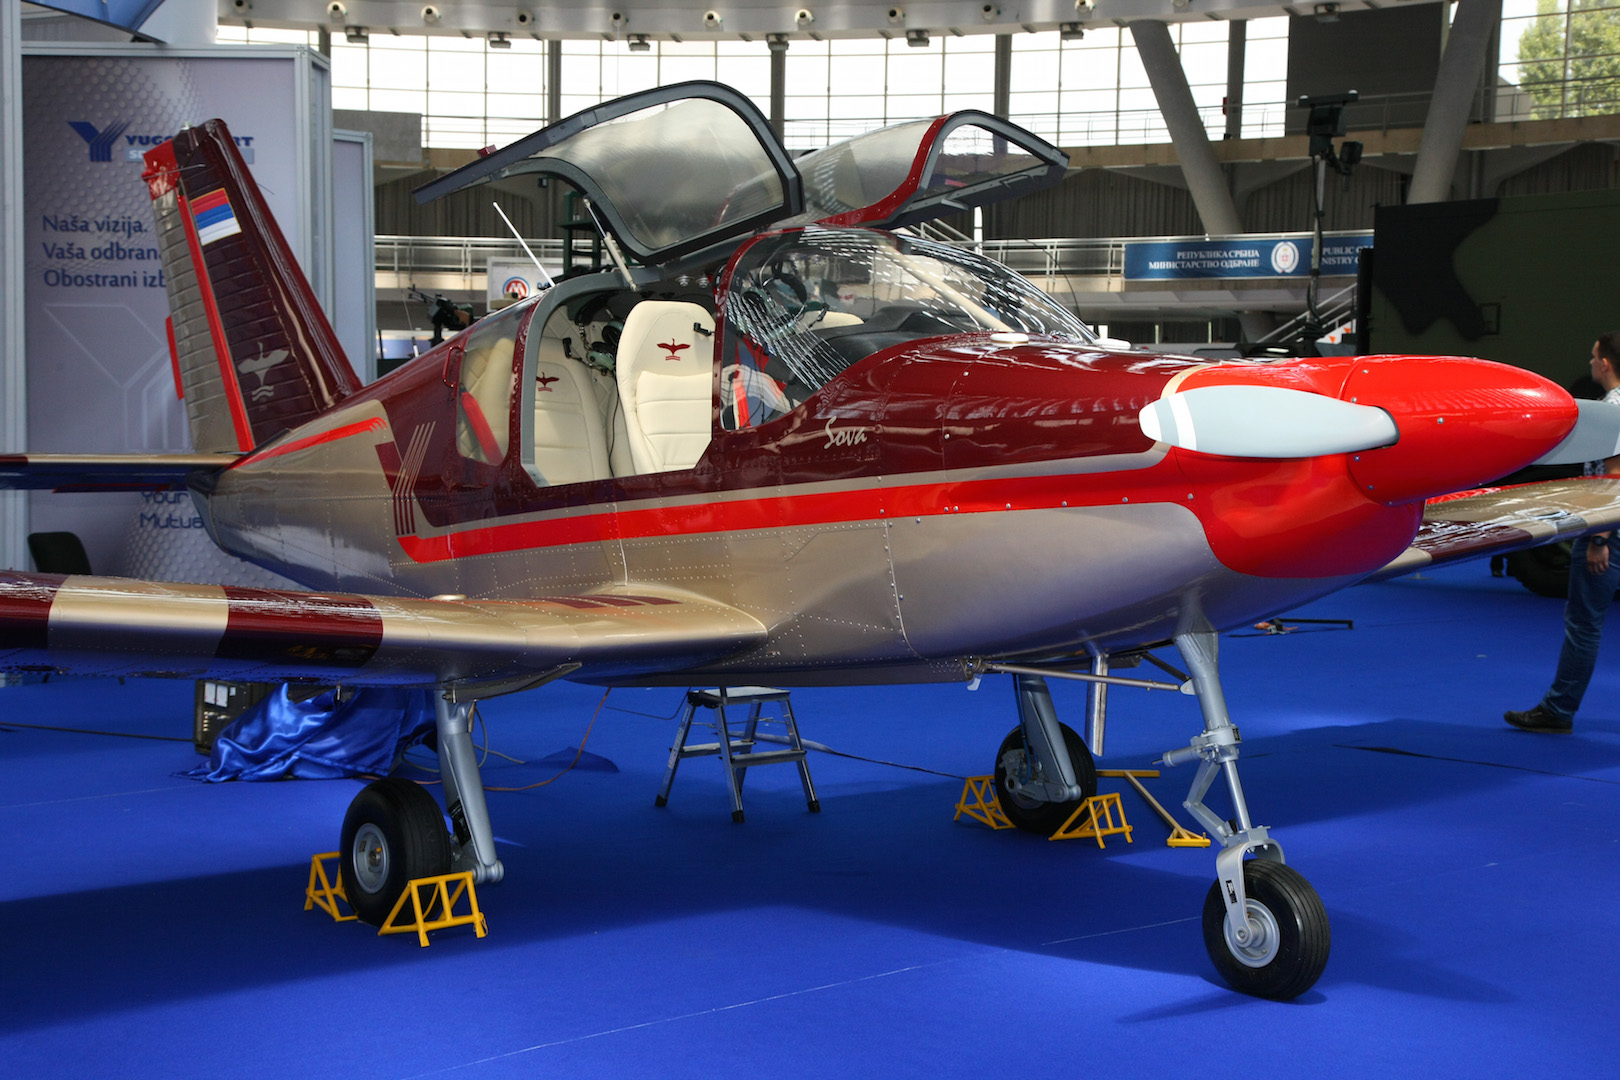 Serbian Utva's new plane in 30 years about to get flight-tested